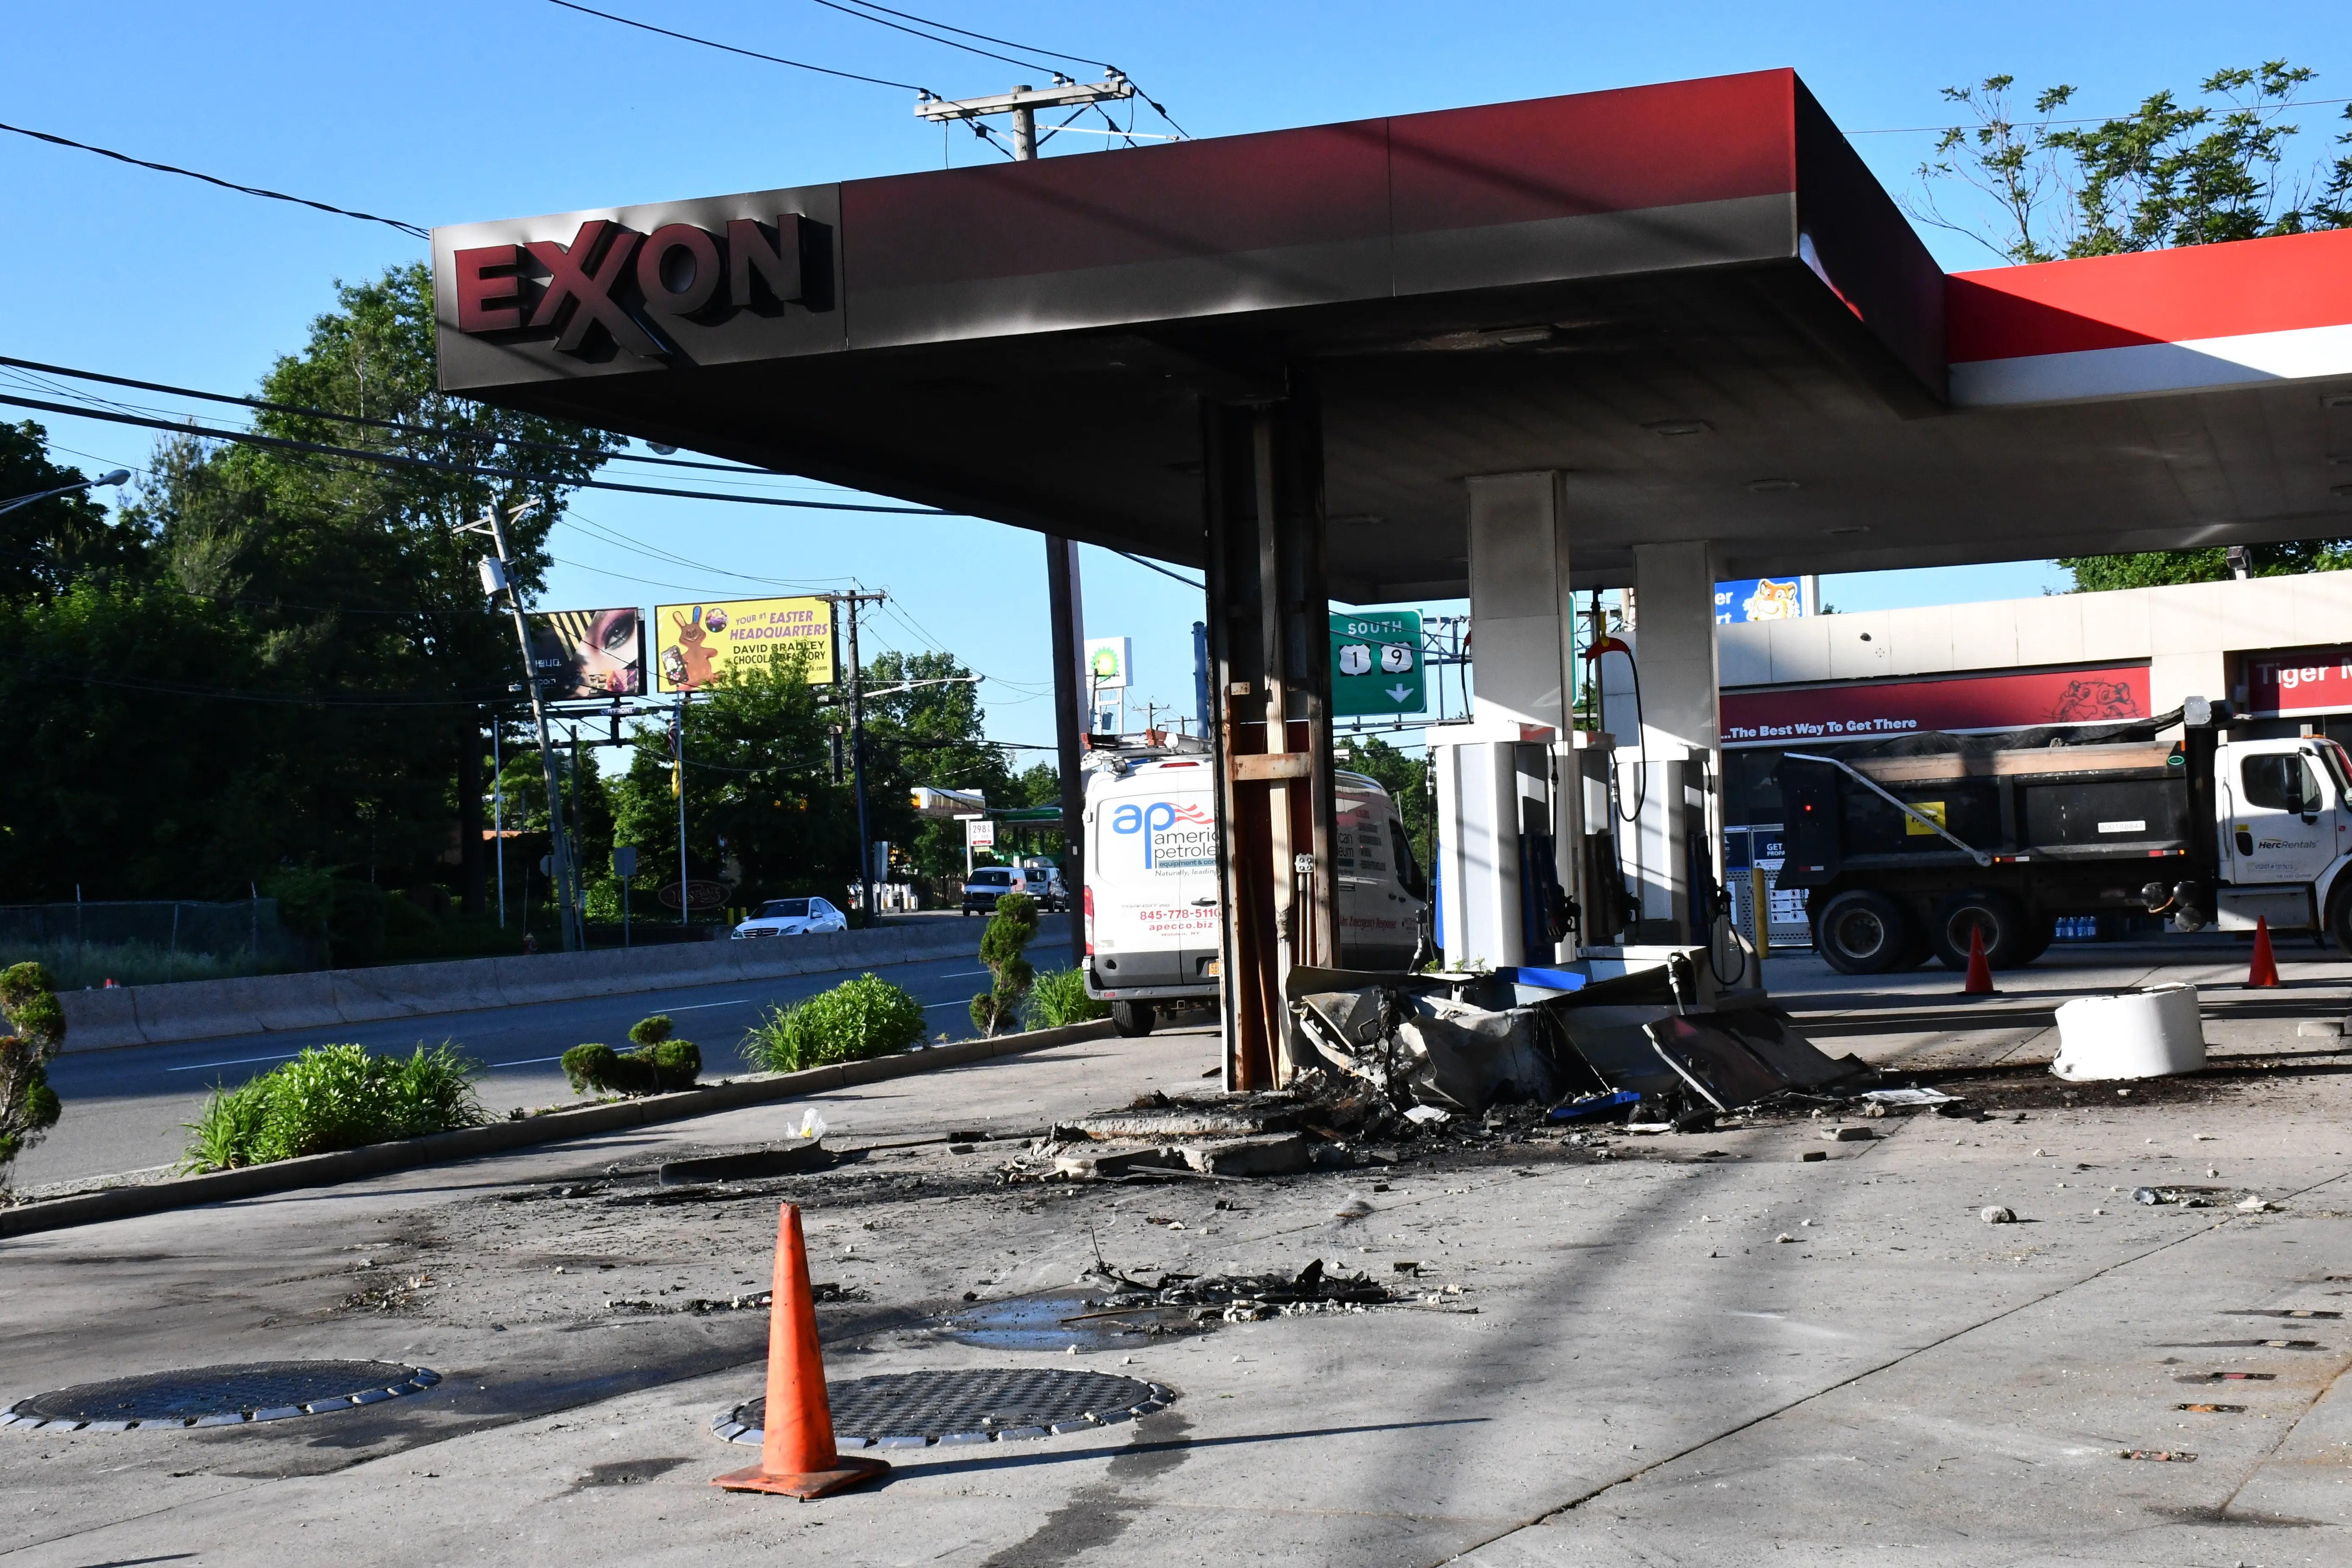 Exxon Gas Station Jobs - Year of Clean Water